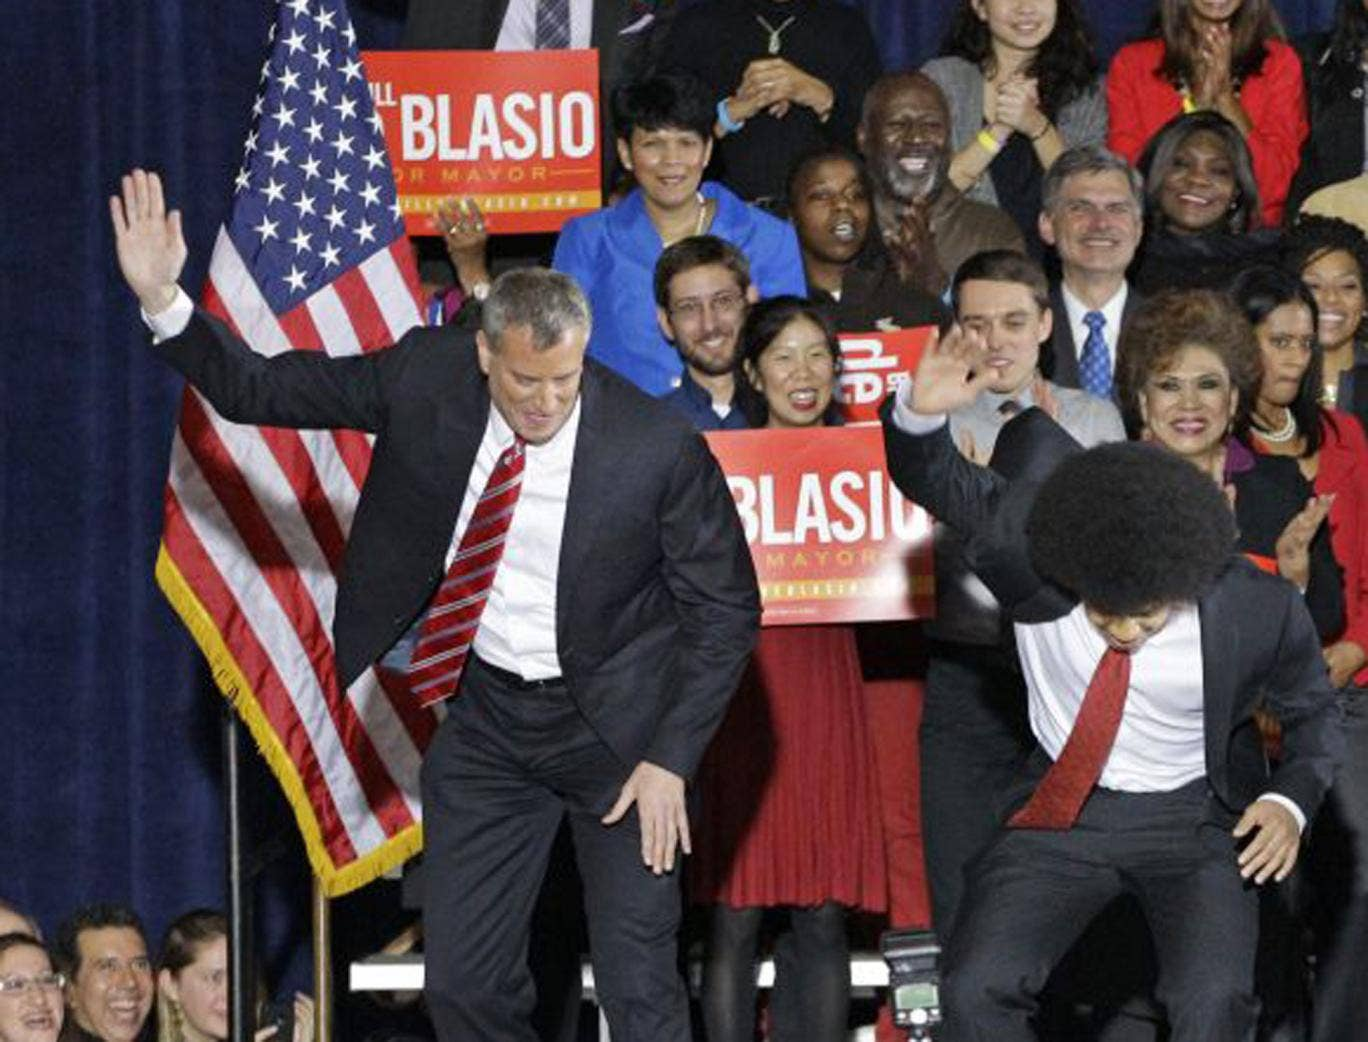 """Supporters watch as Democratic mayor-elect Bill de Blasio and his son Dante perform the family's """"smack down"""" dance on stage after de Blasio was elected mayorof New York City on November 5th"""